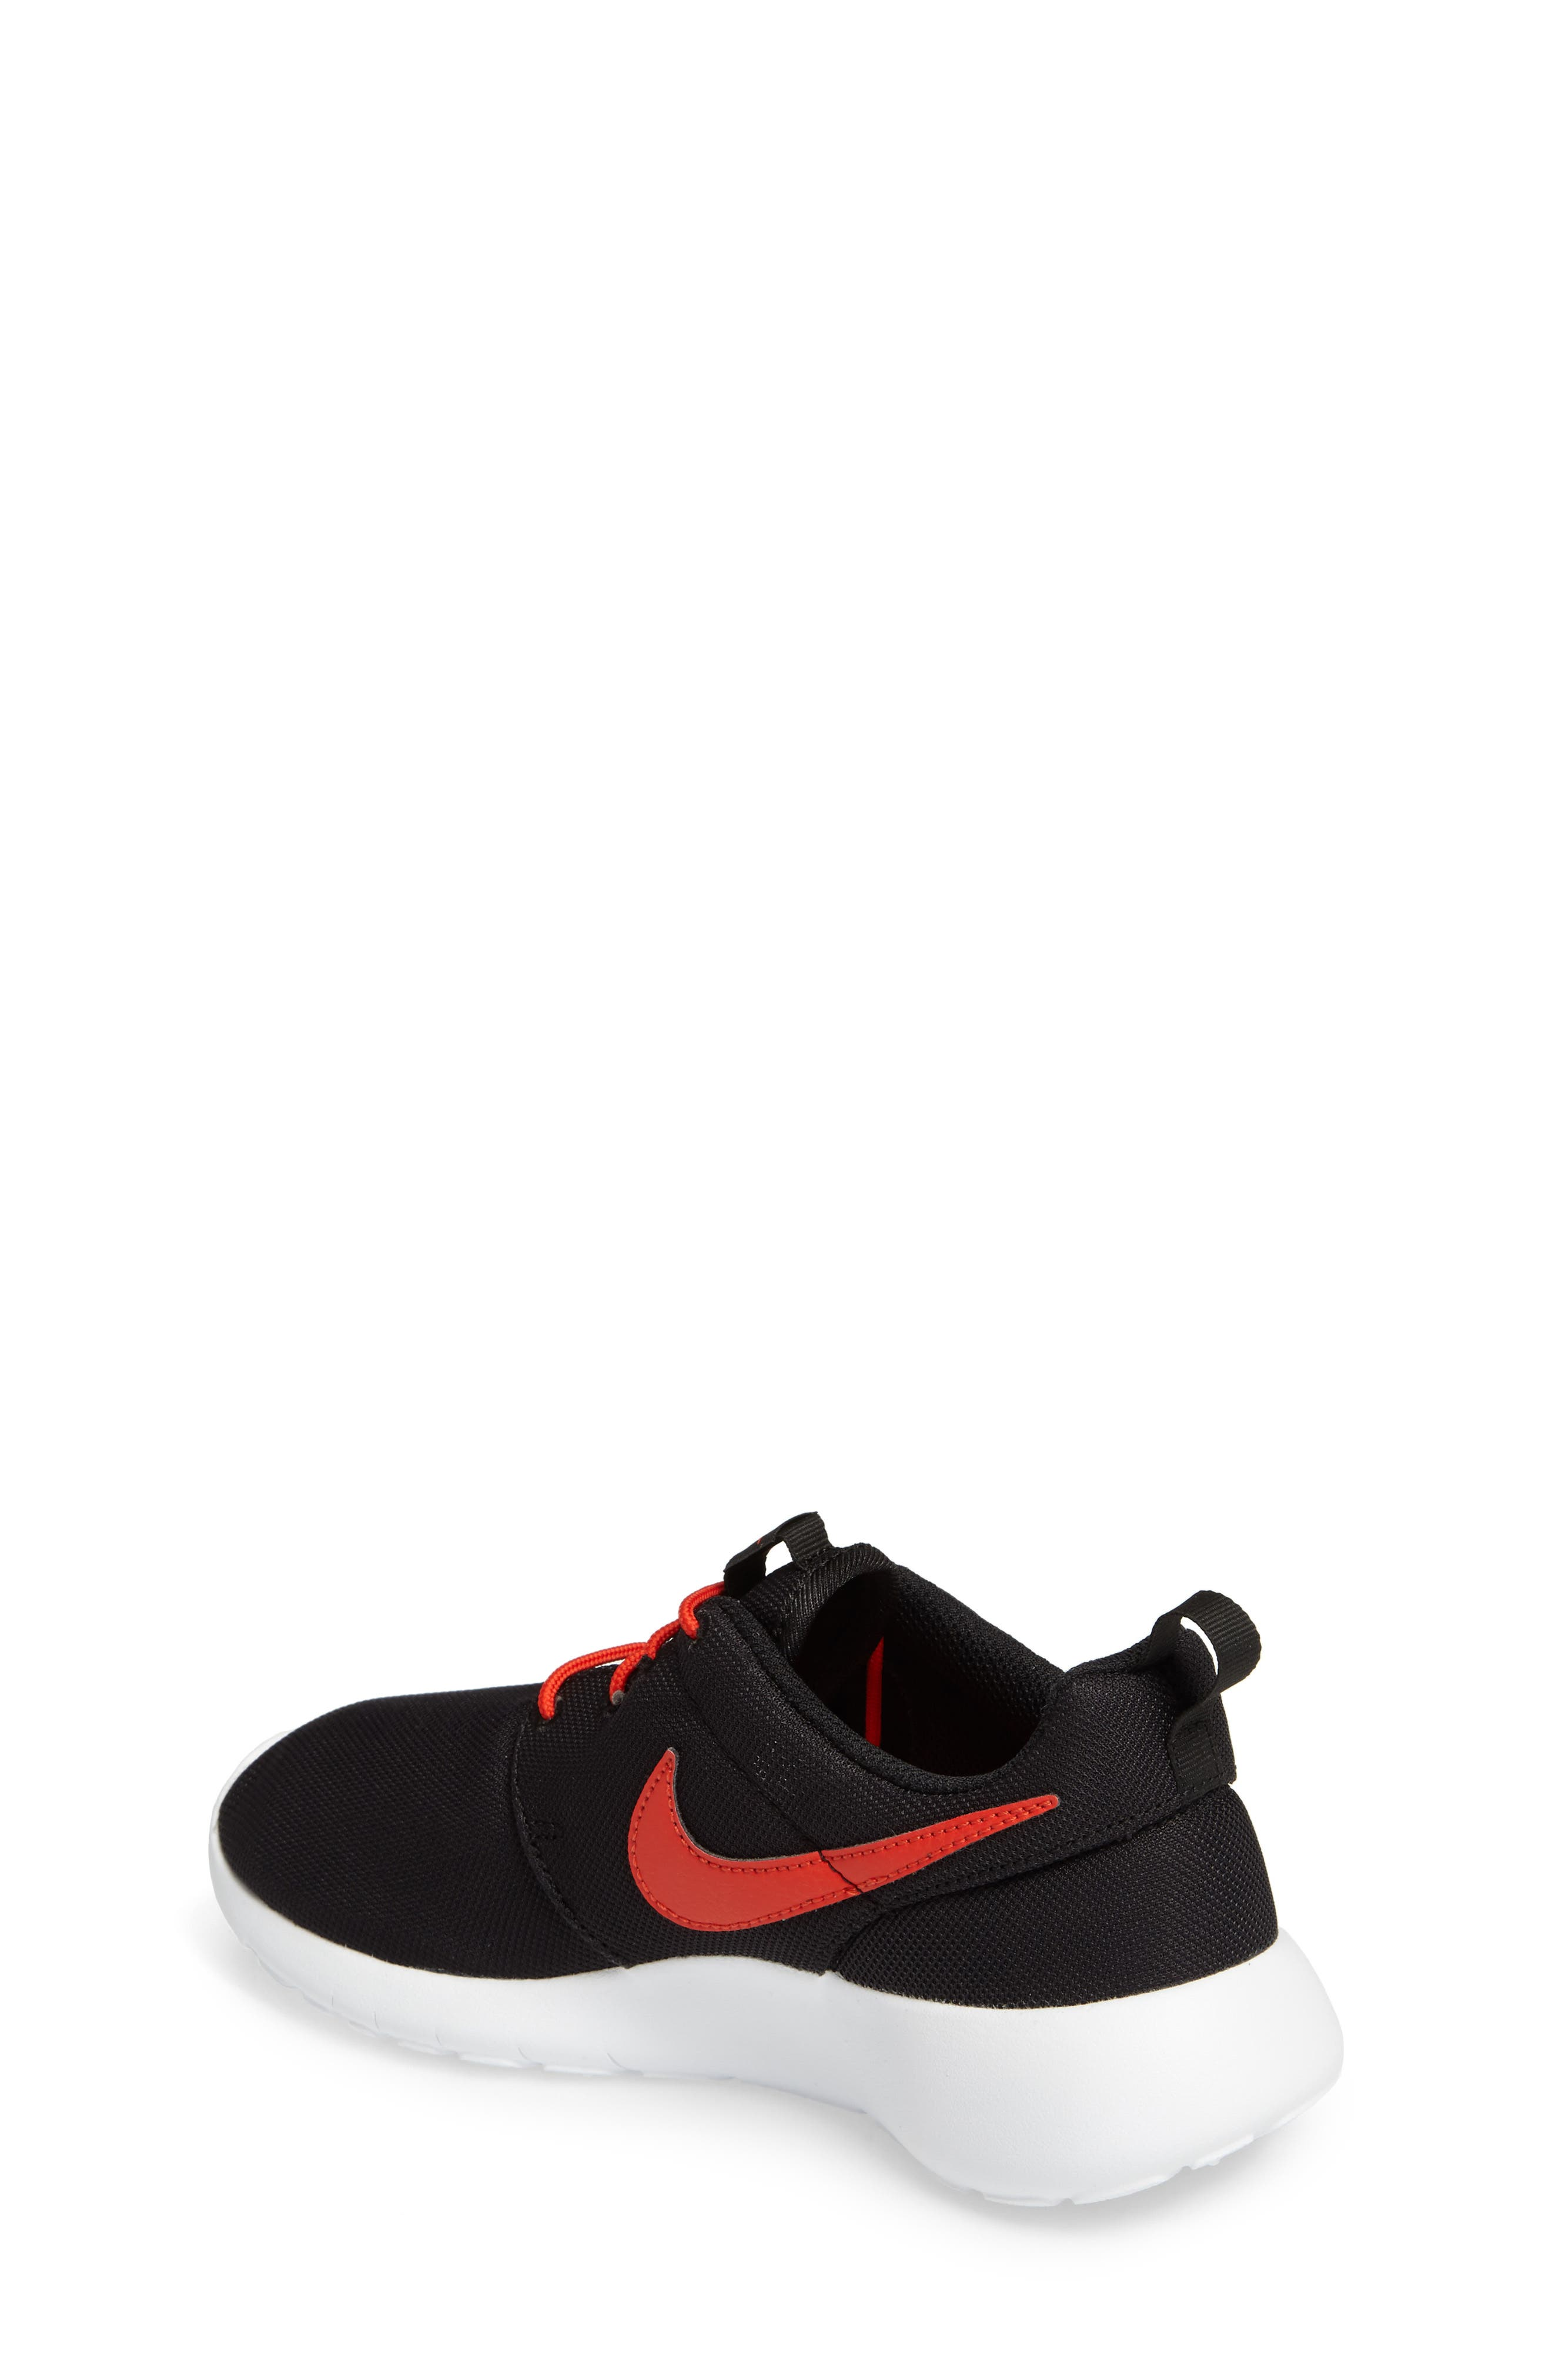 'Roshe Run' Sneaker,                             Alternate thumbnail 66, color,